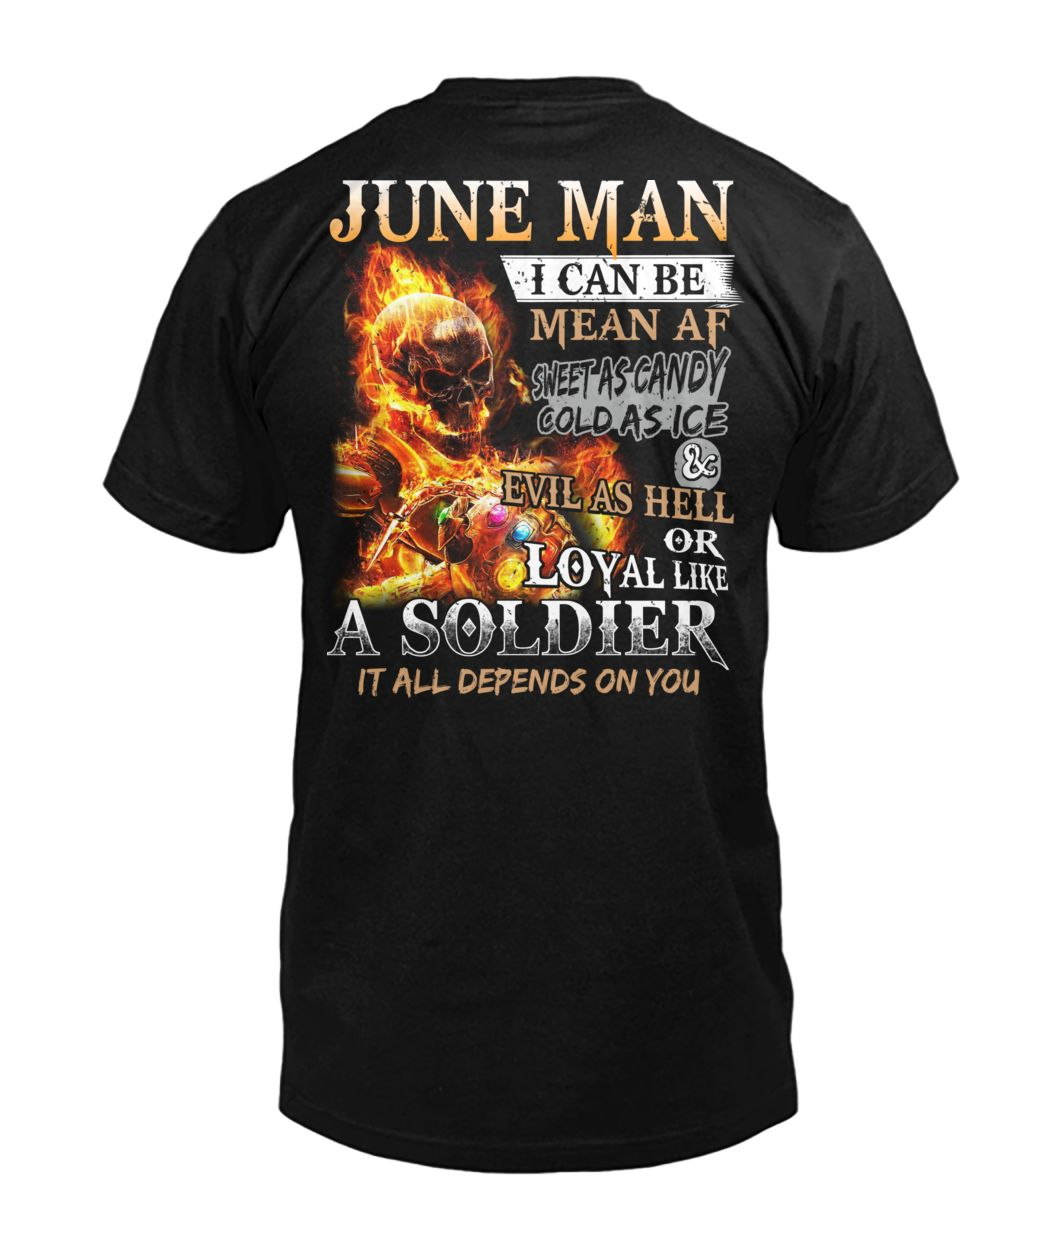 June man I can be mean af sweet as candy gold as ice and evil as hell mens v-neck